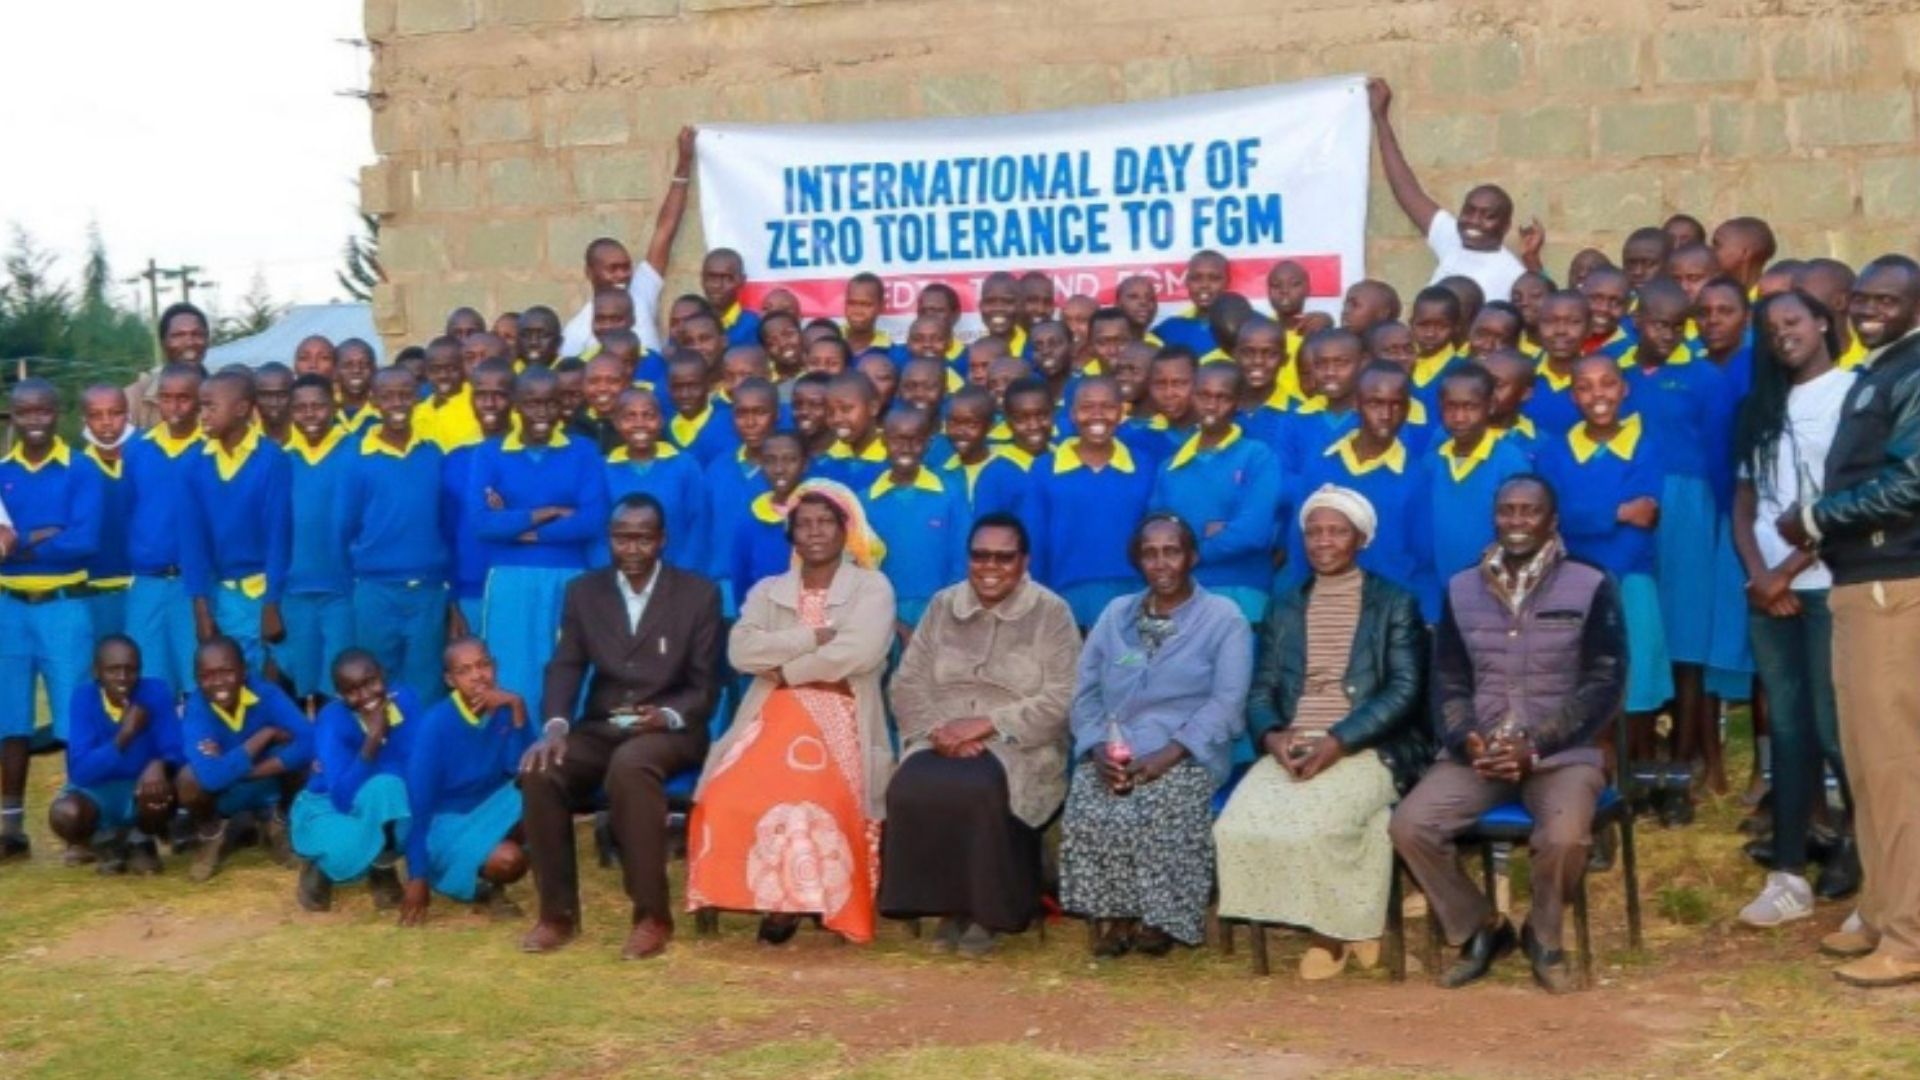 Men have an equal role in helping to End FGM